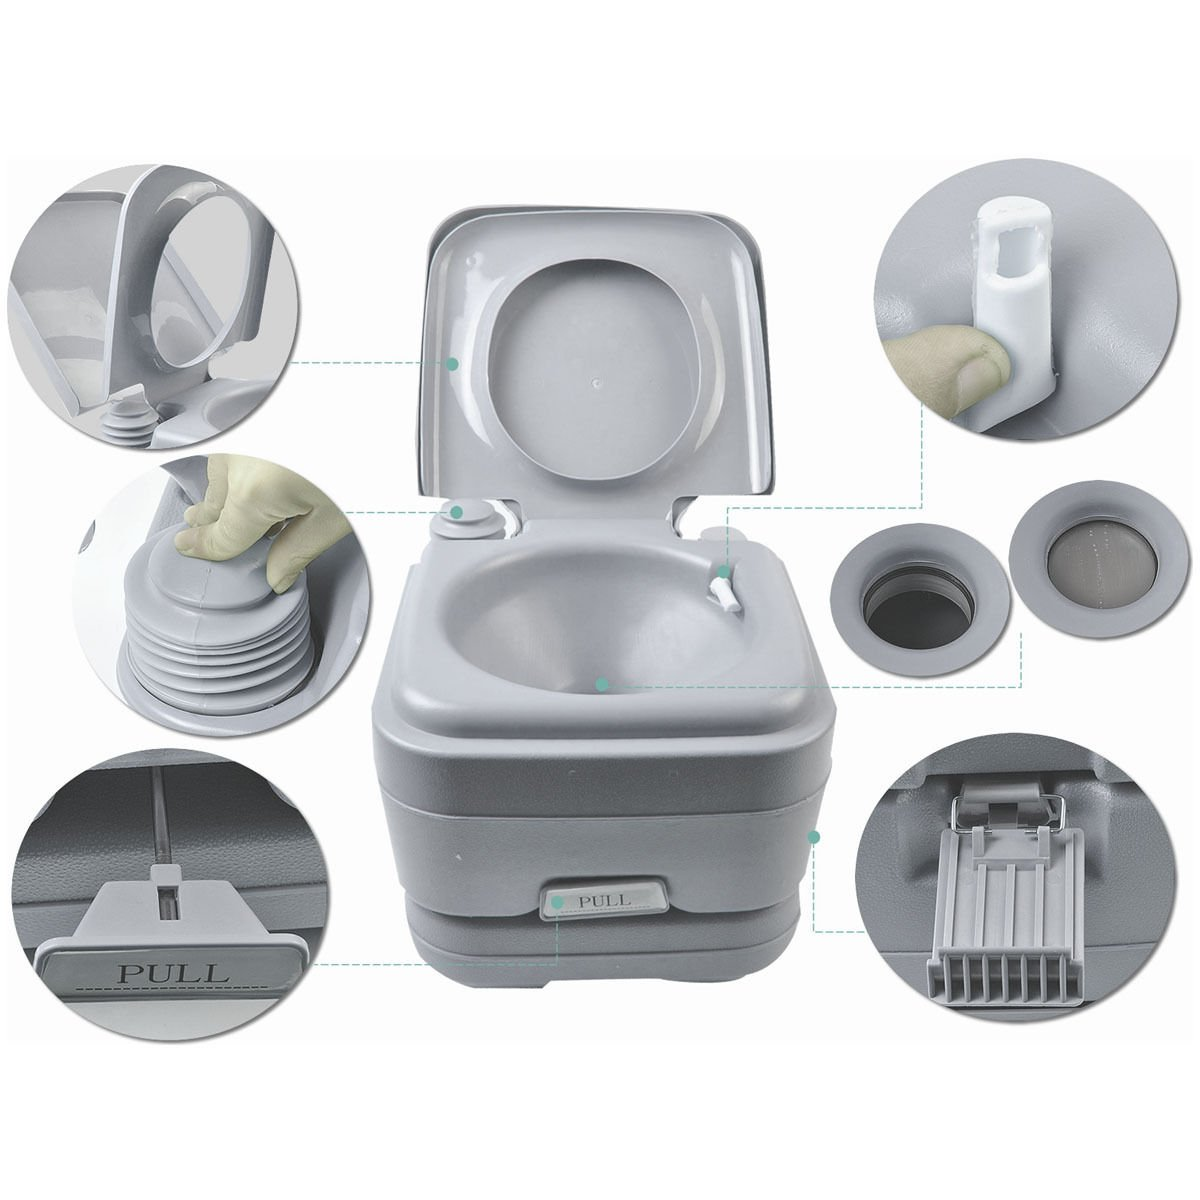 Portable Toilet Travel Camping Outdoor Indoor Toilet Potty Flush 2.8 Gallon 10L by Caraya (Image #5)